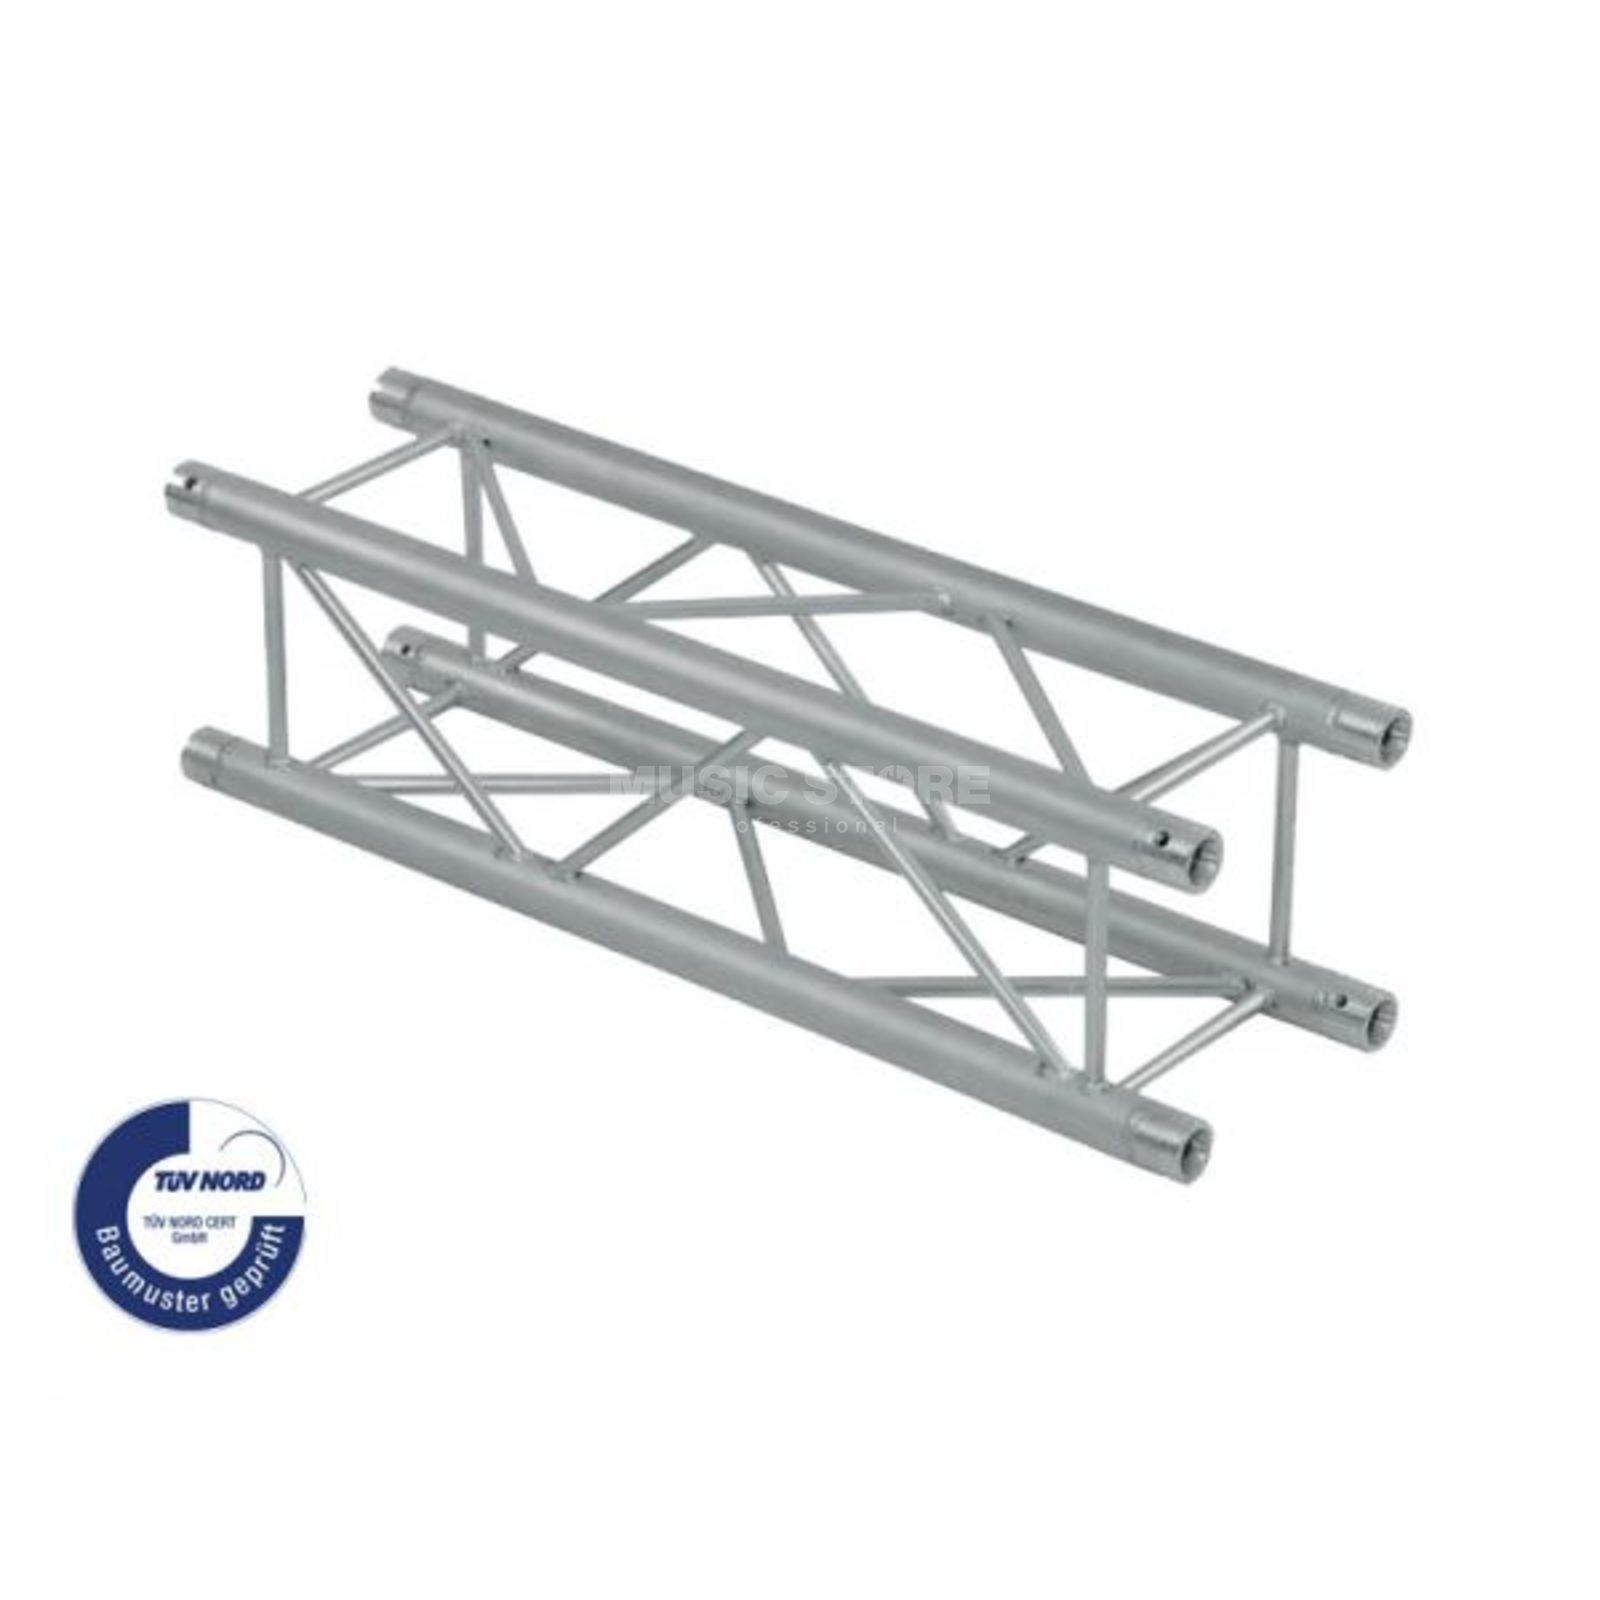 DURATRUSS DT 34-350, 4-Point Truss 3.5 m incl.  Conical Coupler Produktbillede